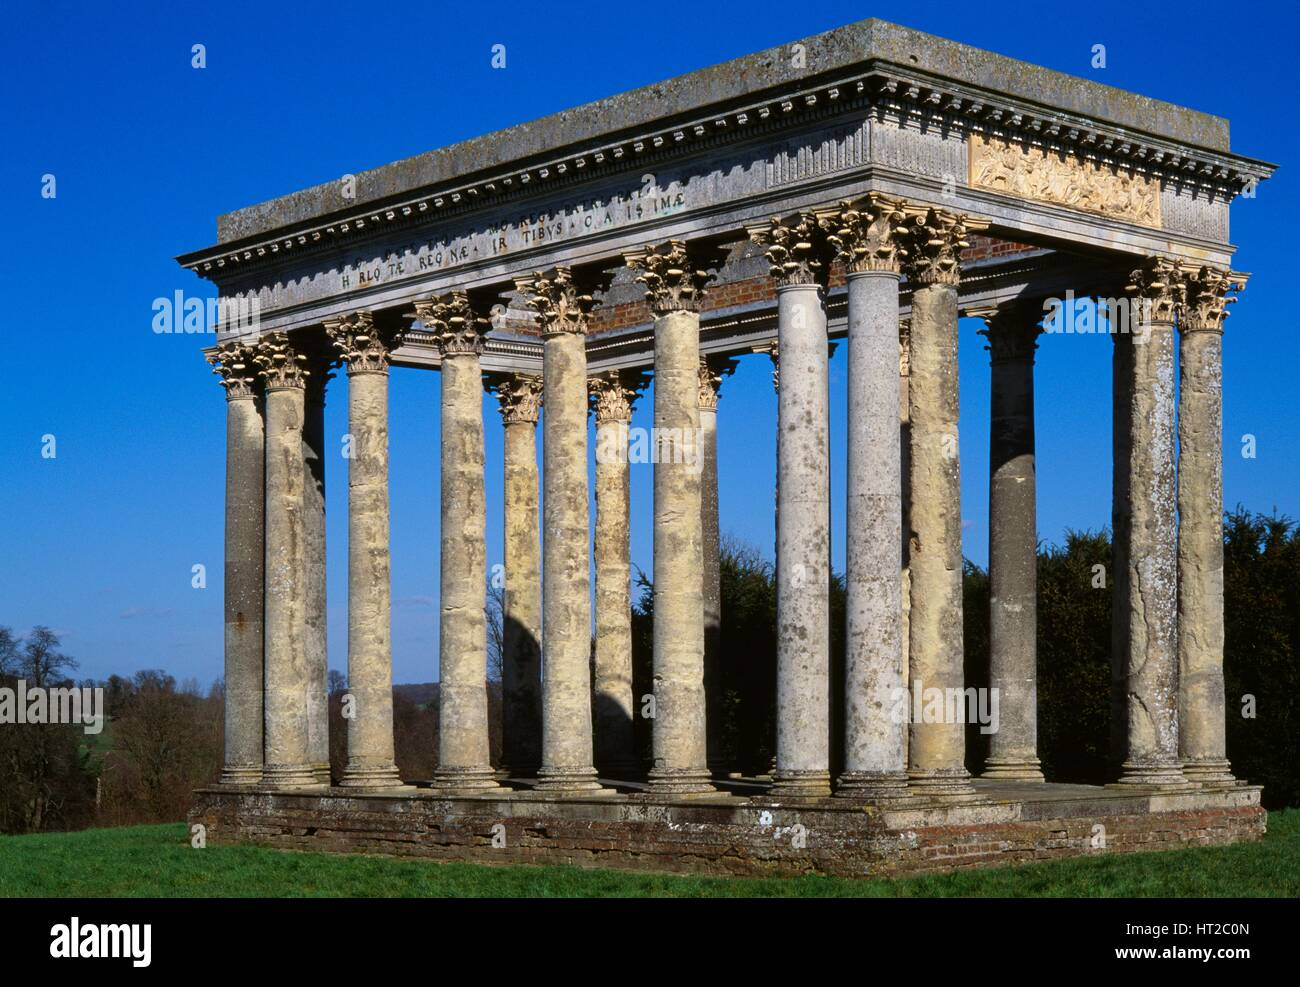 The Temple of Concord, Audley End House and Gardens, Saffron Walden, Essex, c2000s(?). Artist: Marianne Majerus. - Stock Image